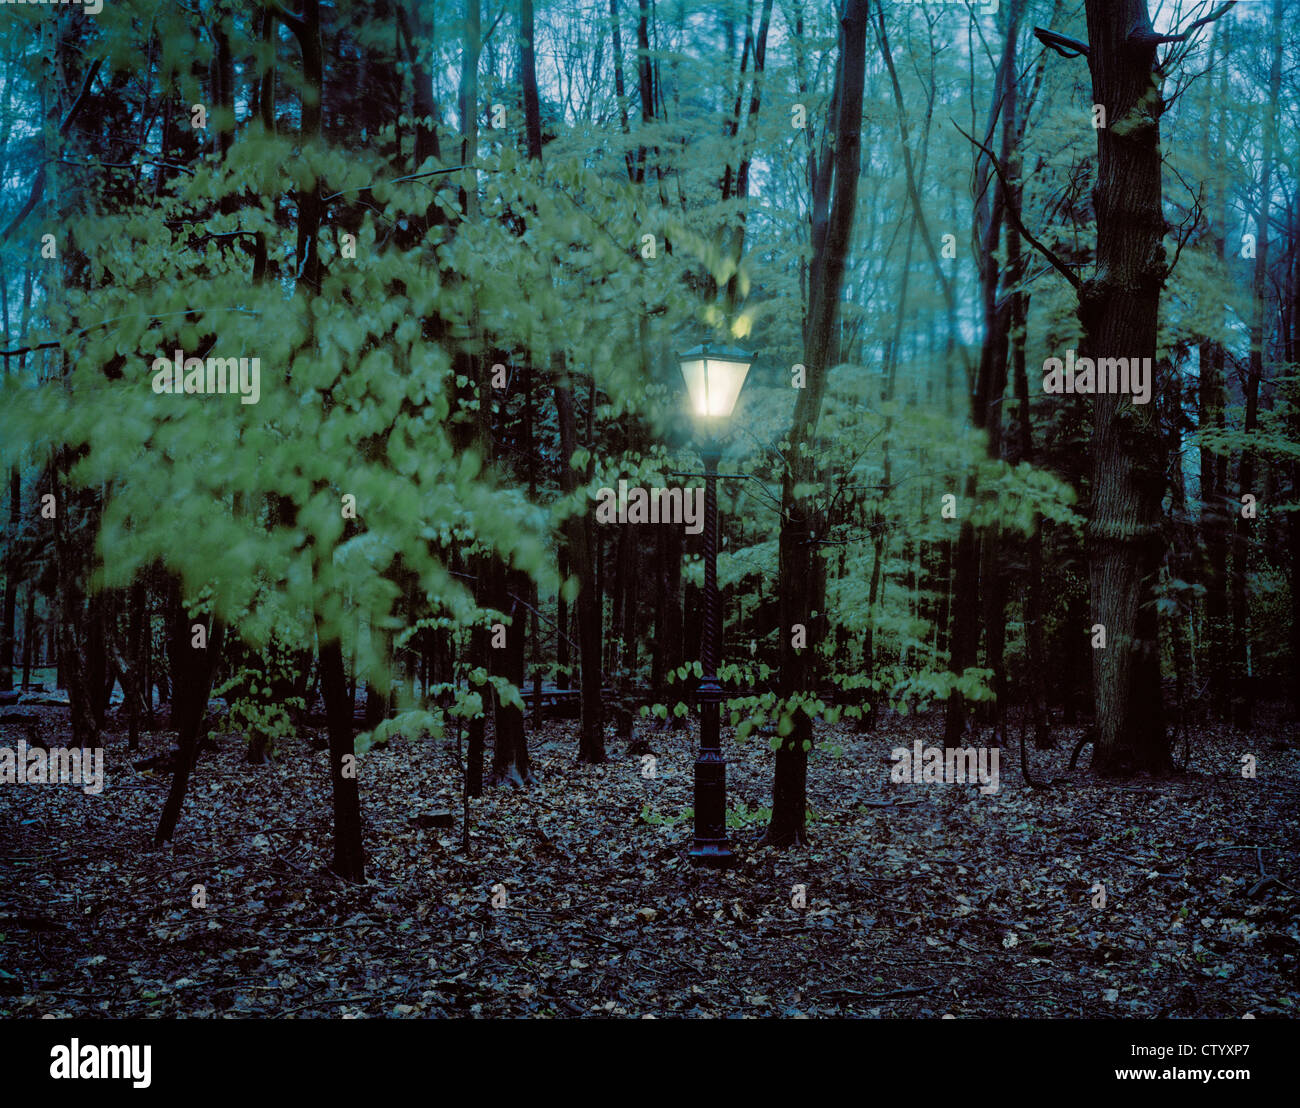 Lantern hanging from trees in forest Stock Photo